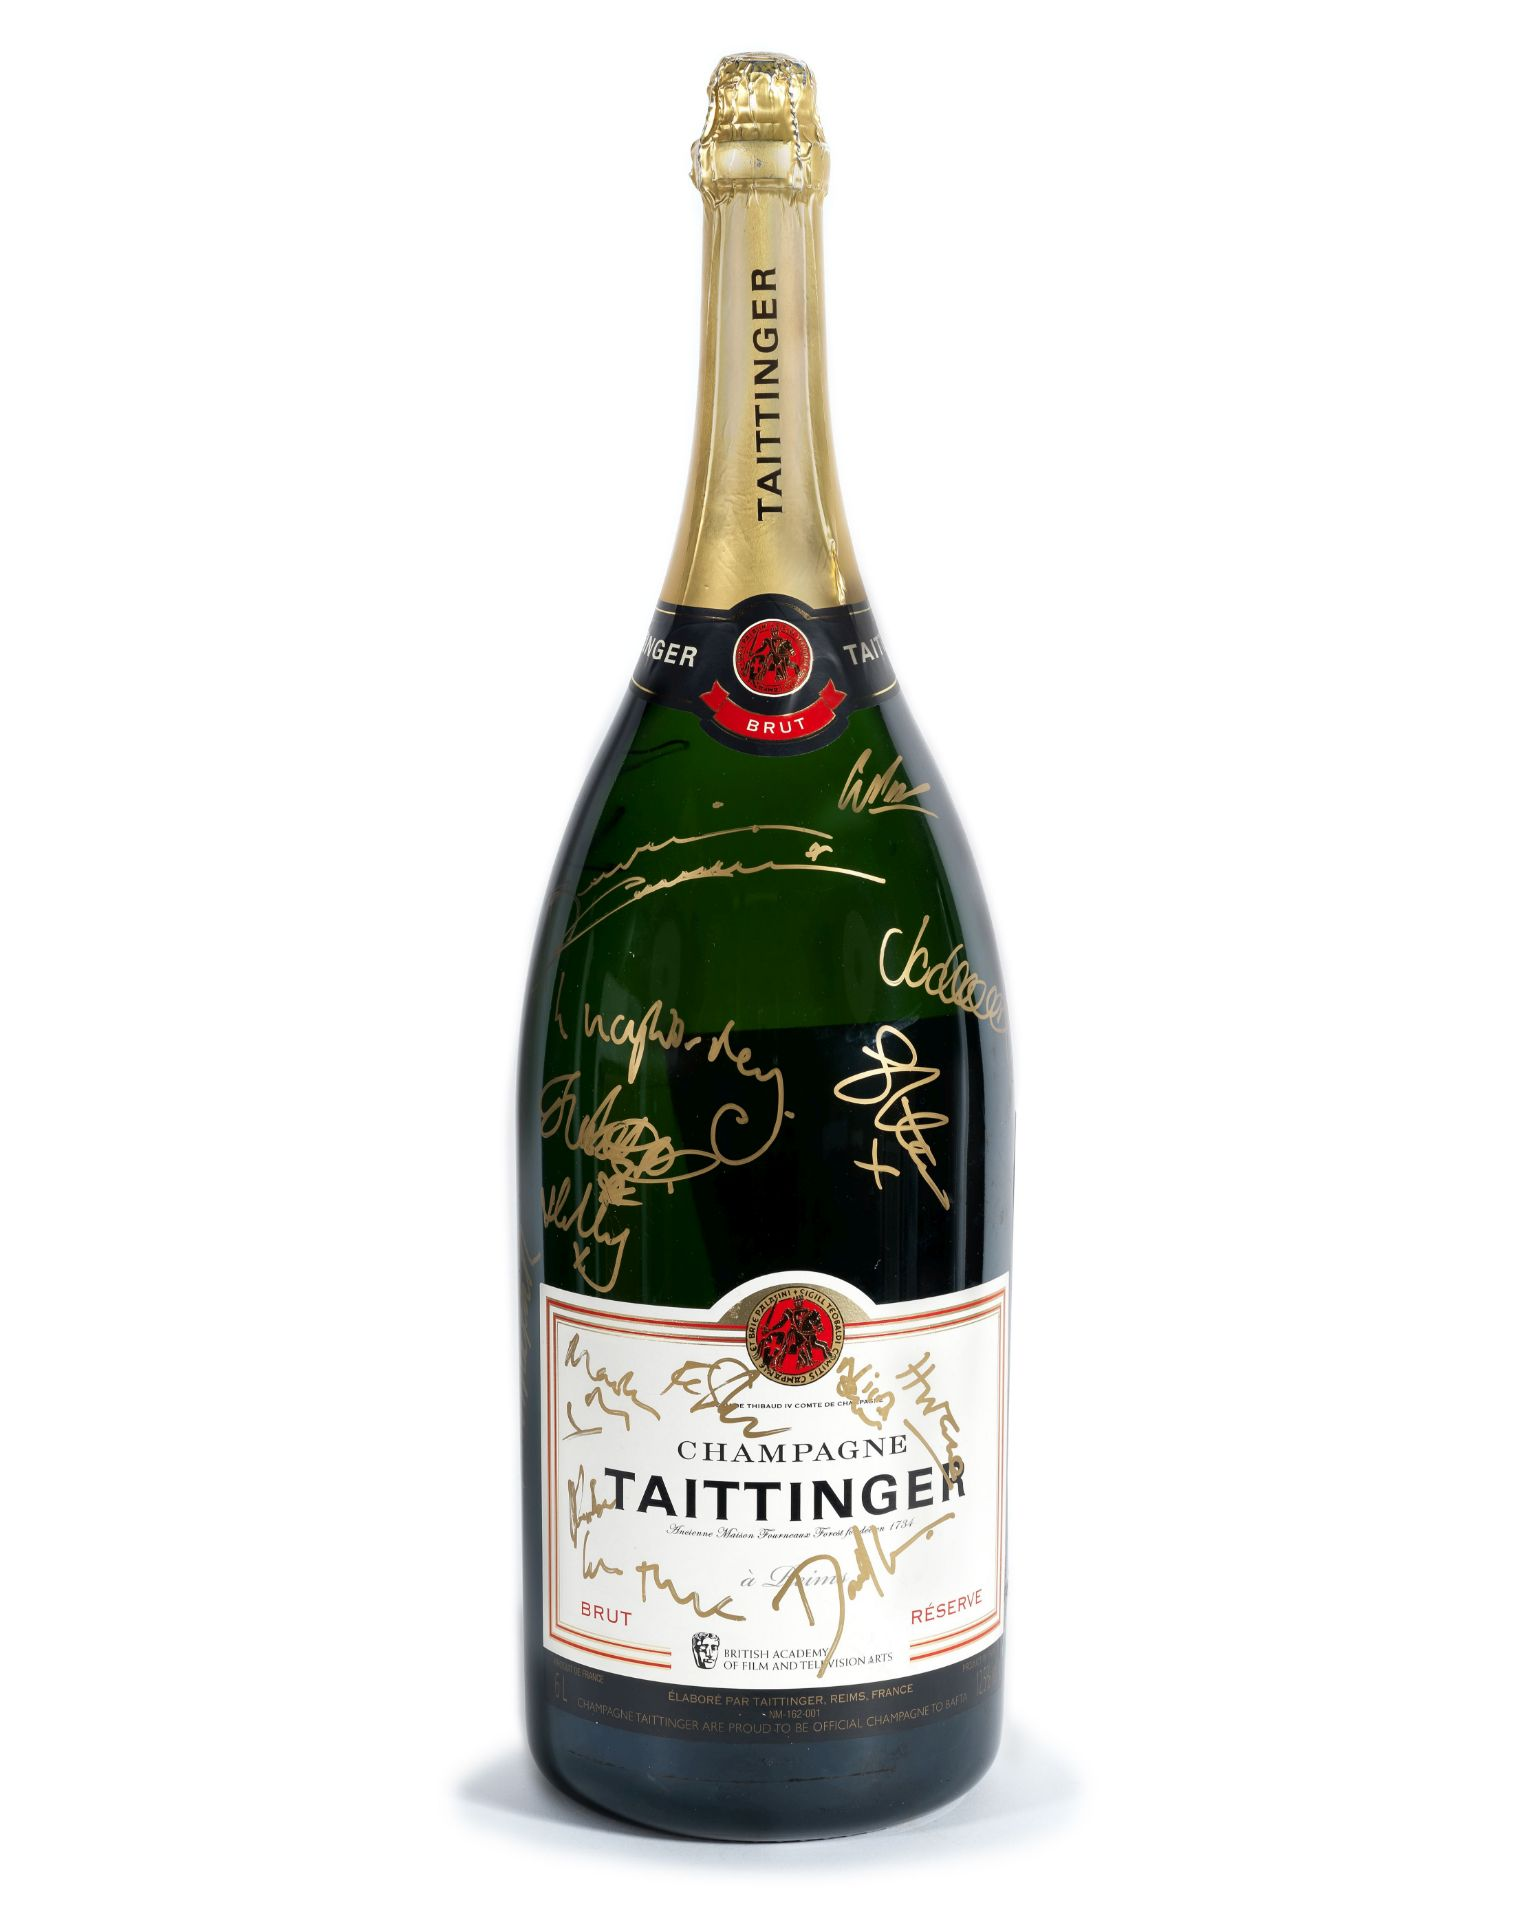 BAFTA: A Methuselah of Champagne Taittinger signed by guests at the 2019 Virgin Media British Aca...